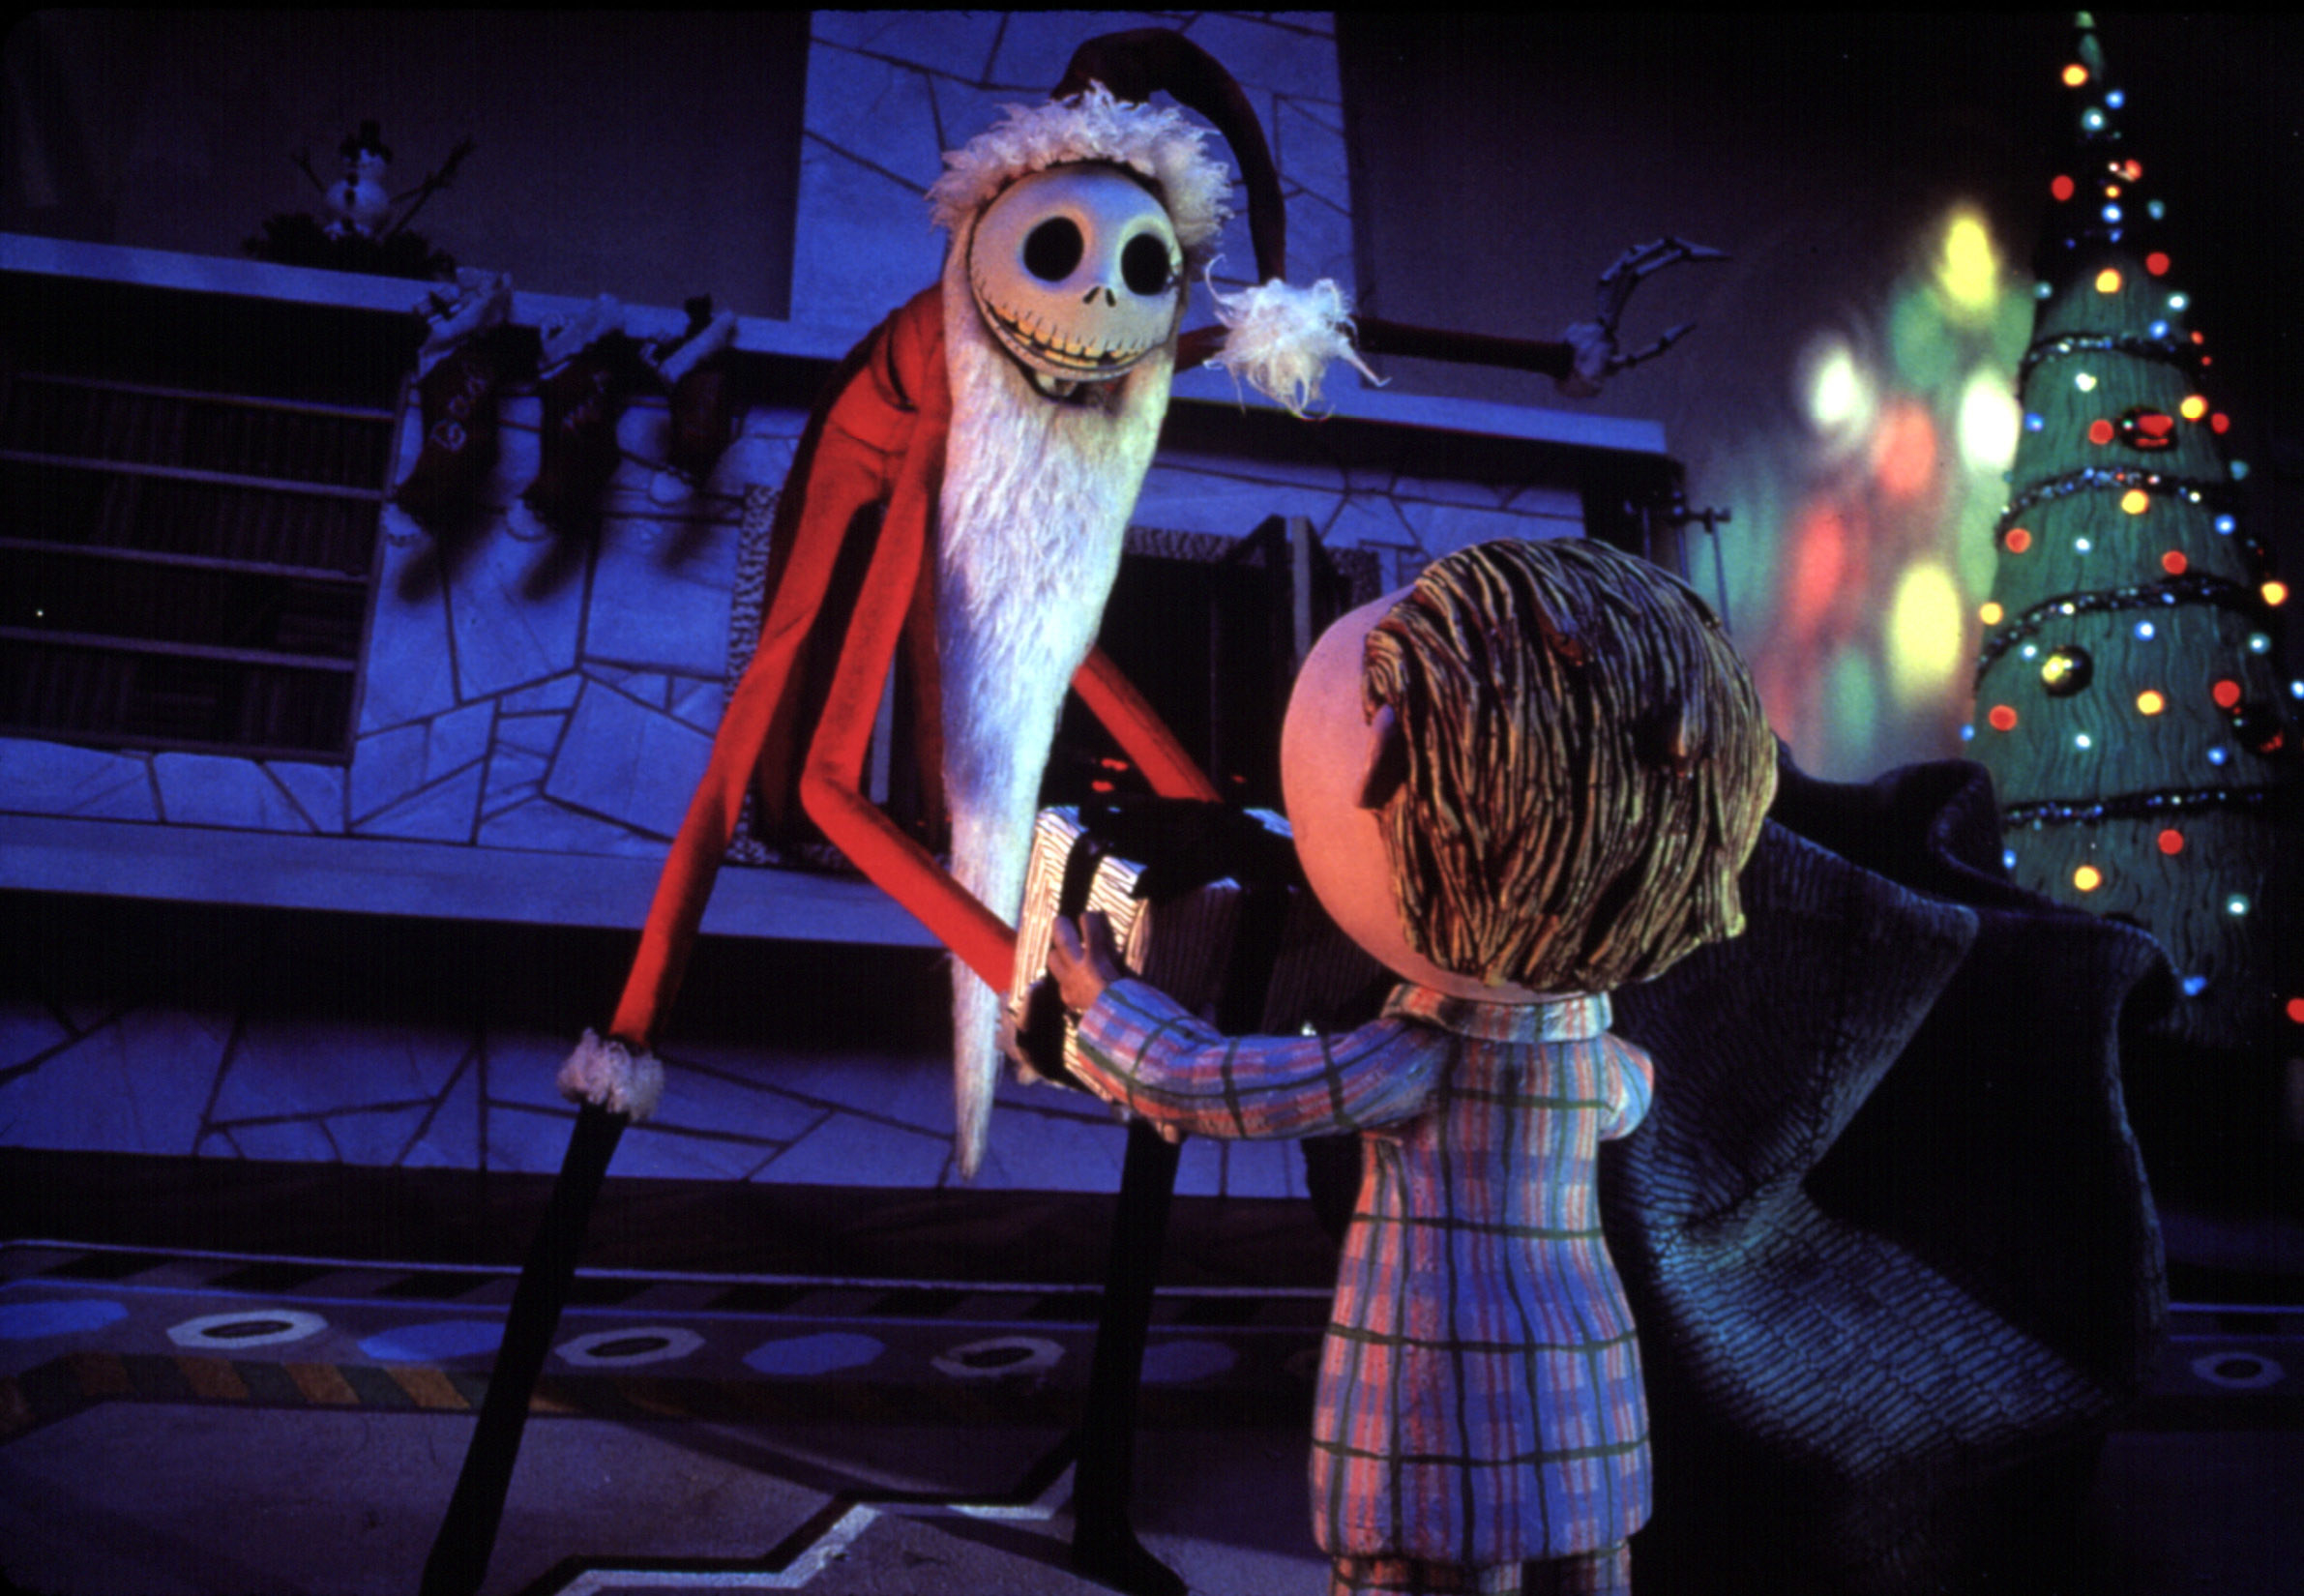 Jack Skellington dressed as Santa Claus handing a gift to a child